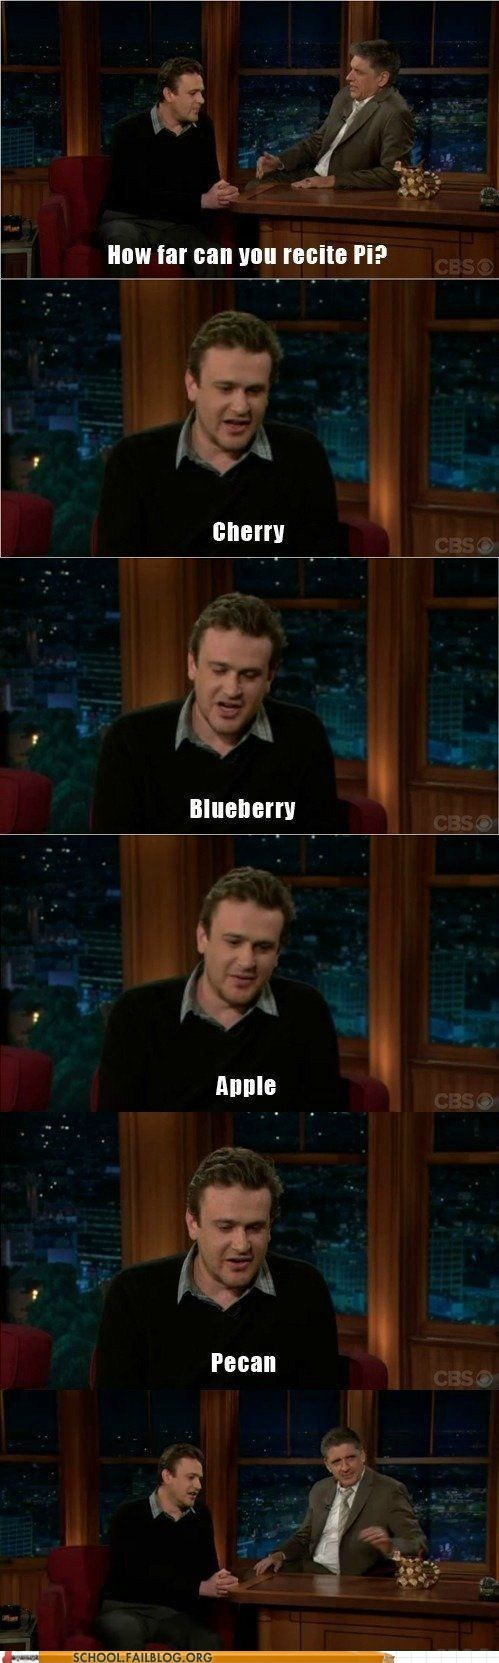 mmm math,pi,pies,jason segel